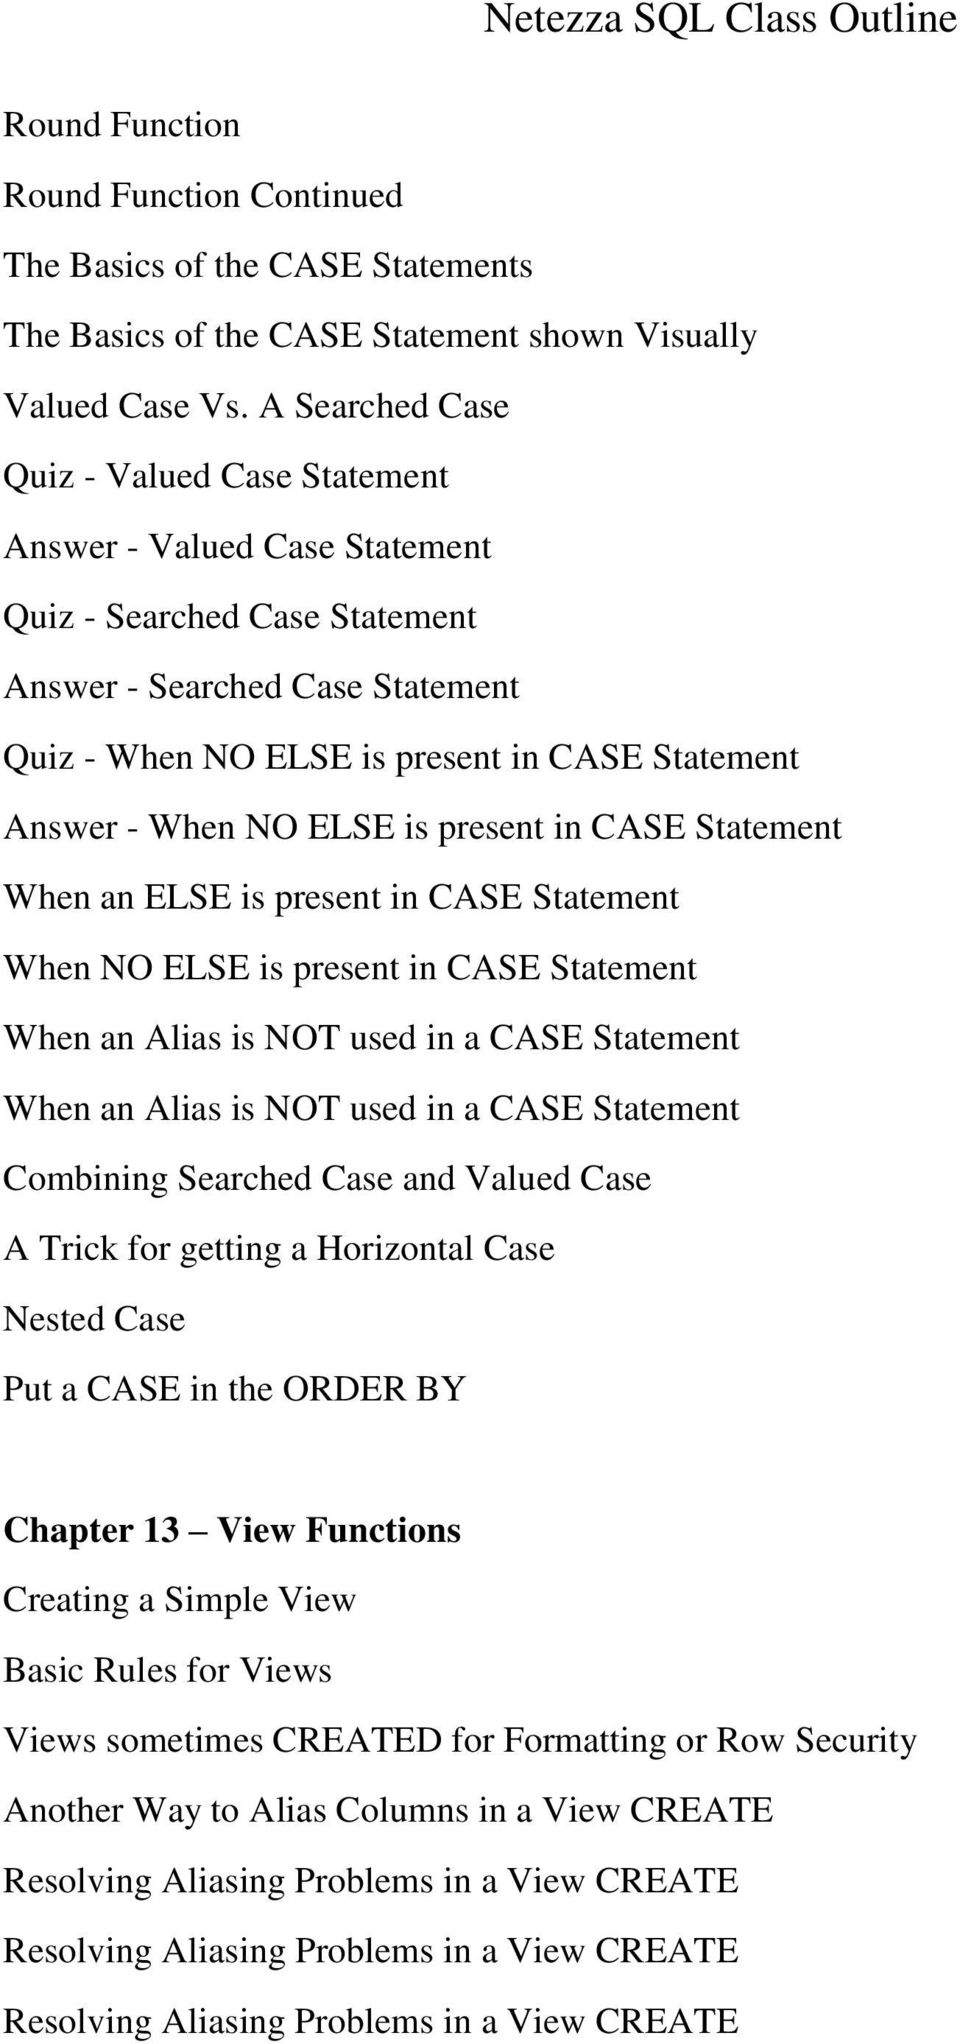 When NO ELSE is present in CASE Statement When an ELSE is present in CASE Statement When NO ELSE is present in CASE Statement When an Alias is NOT used in a CASE Statement When an Alias is NOT used